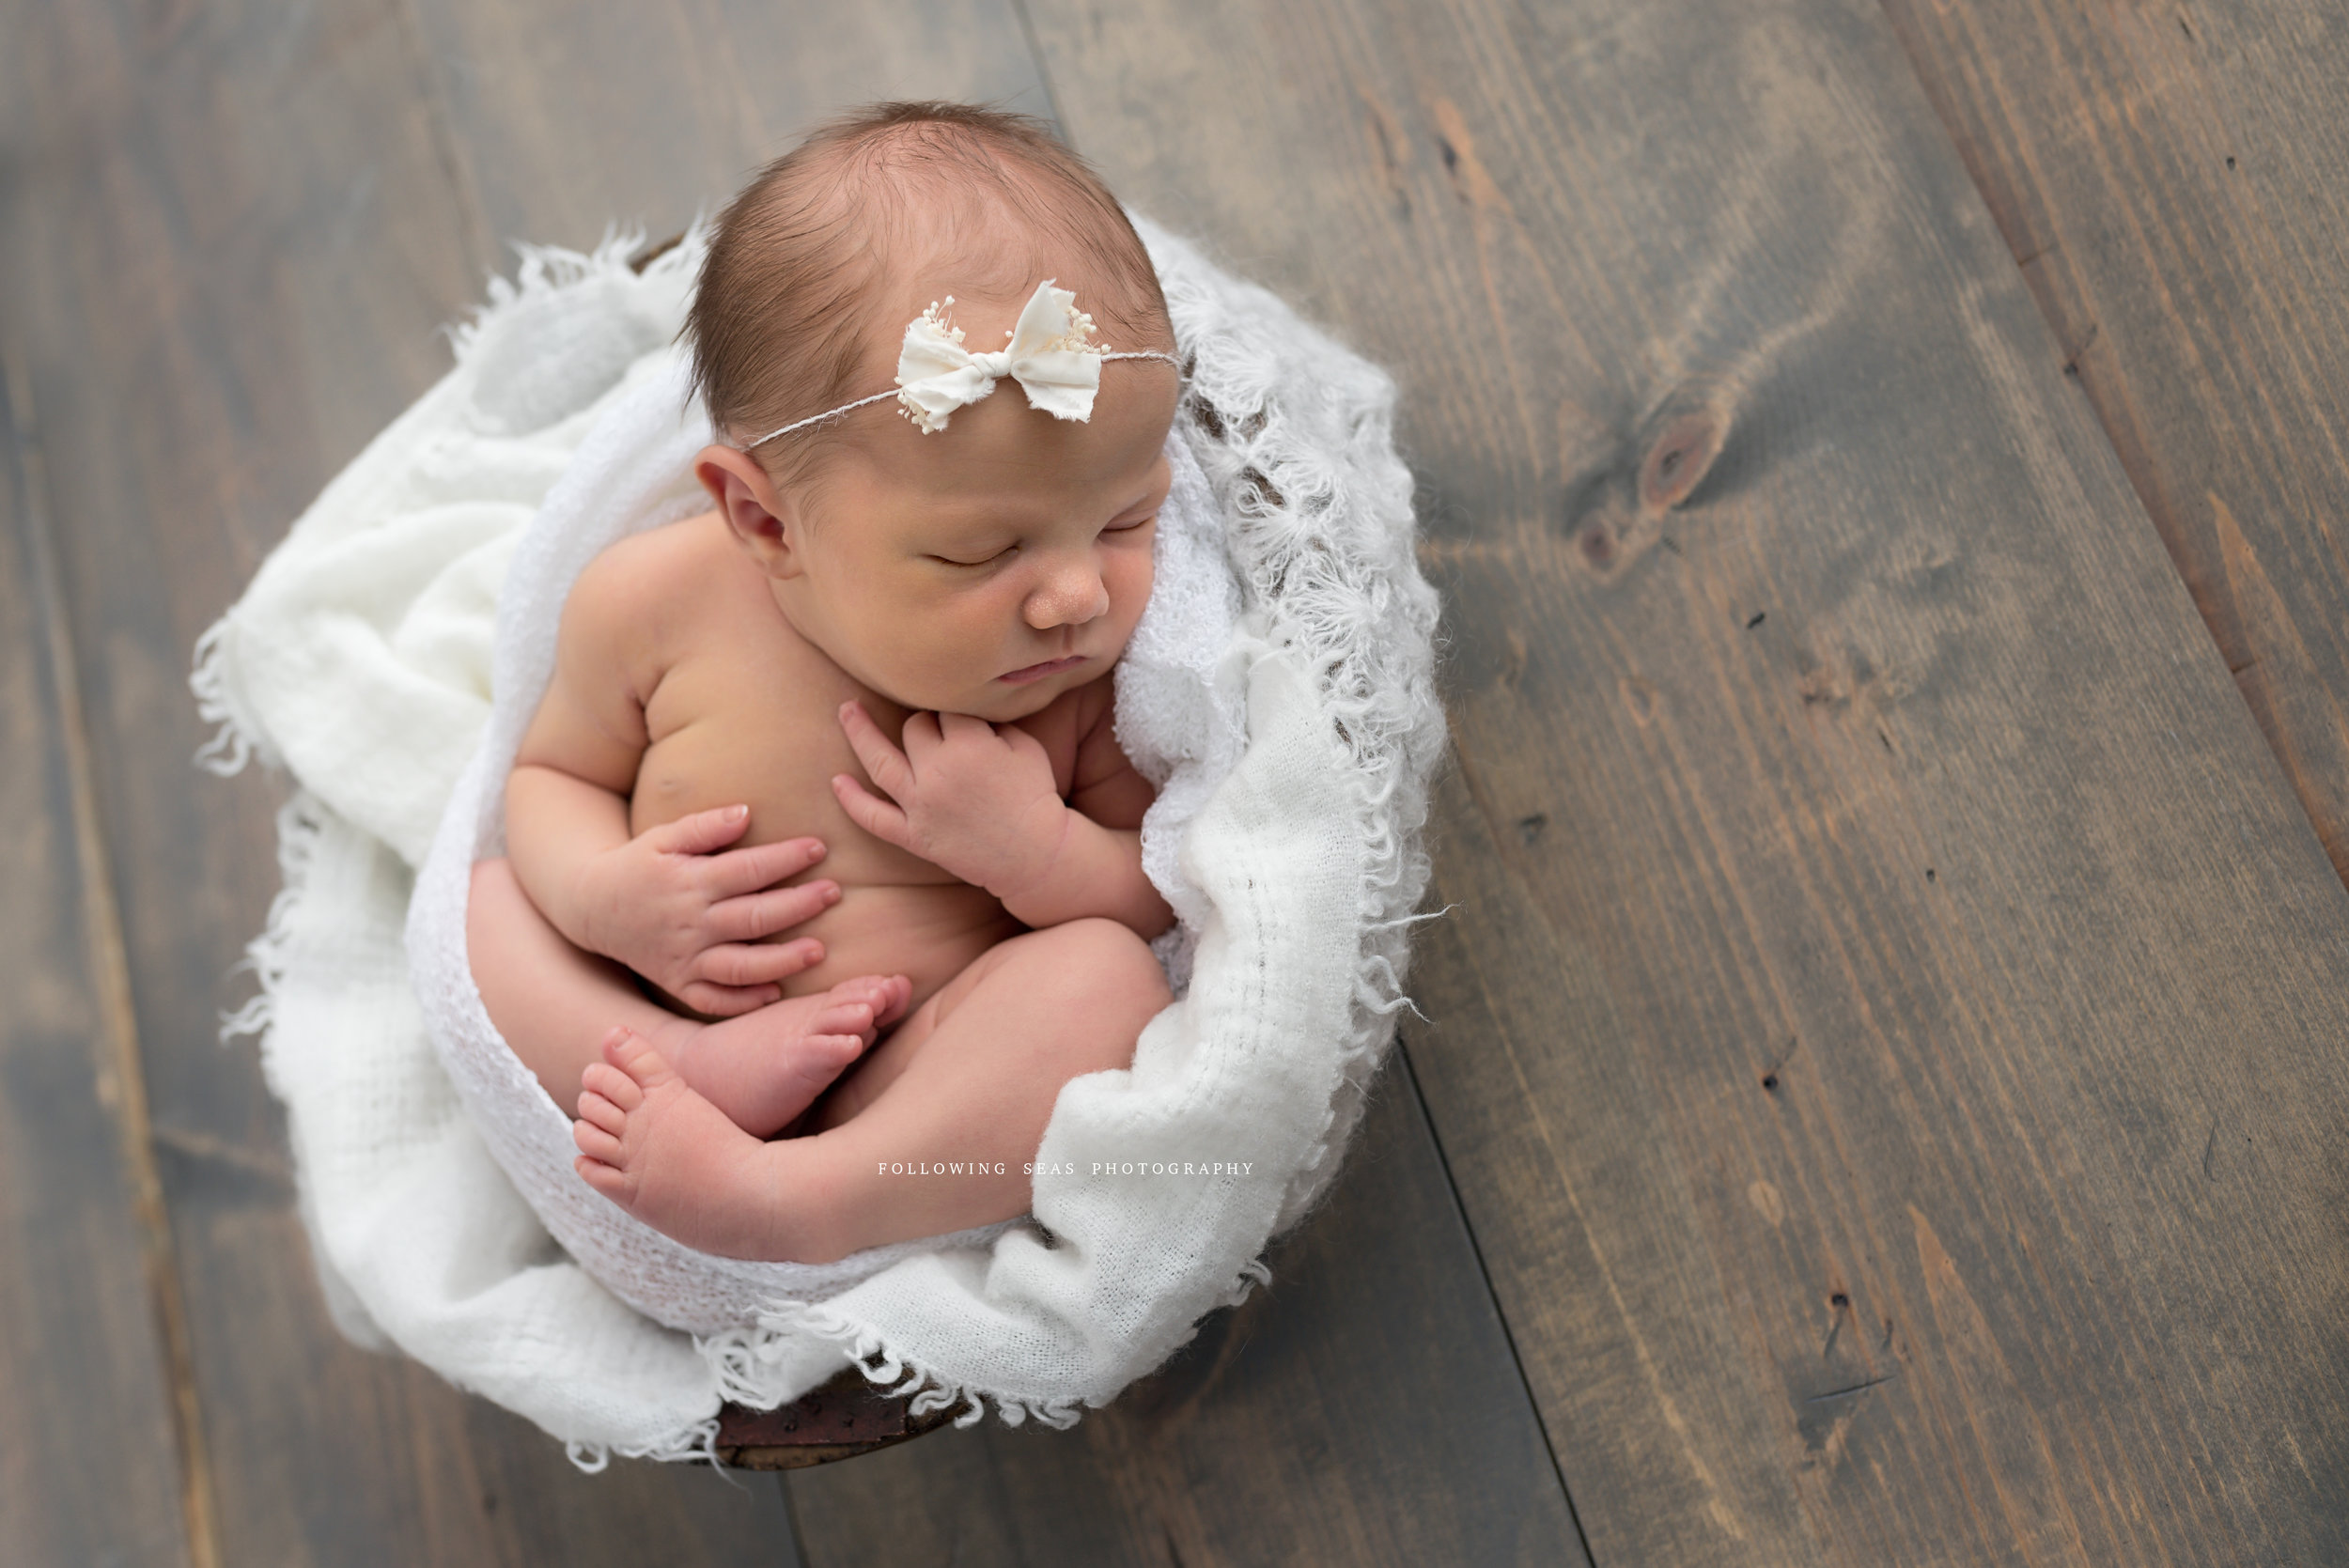 Charleston-Newborn-Photographer-Following-Seas-Photography-7192.jpg